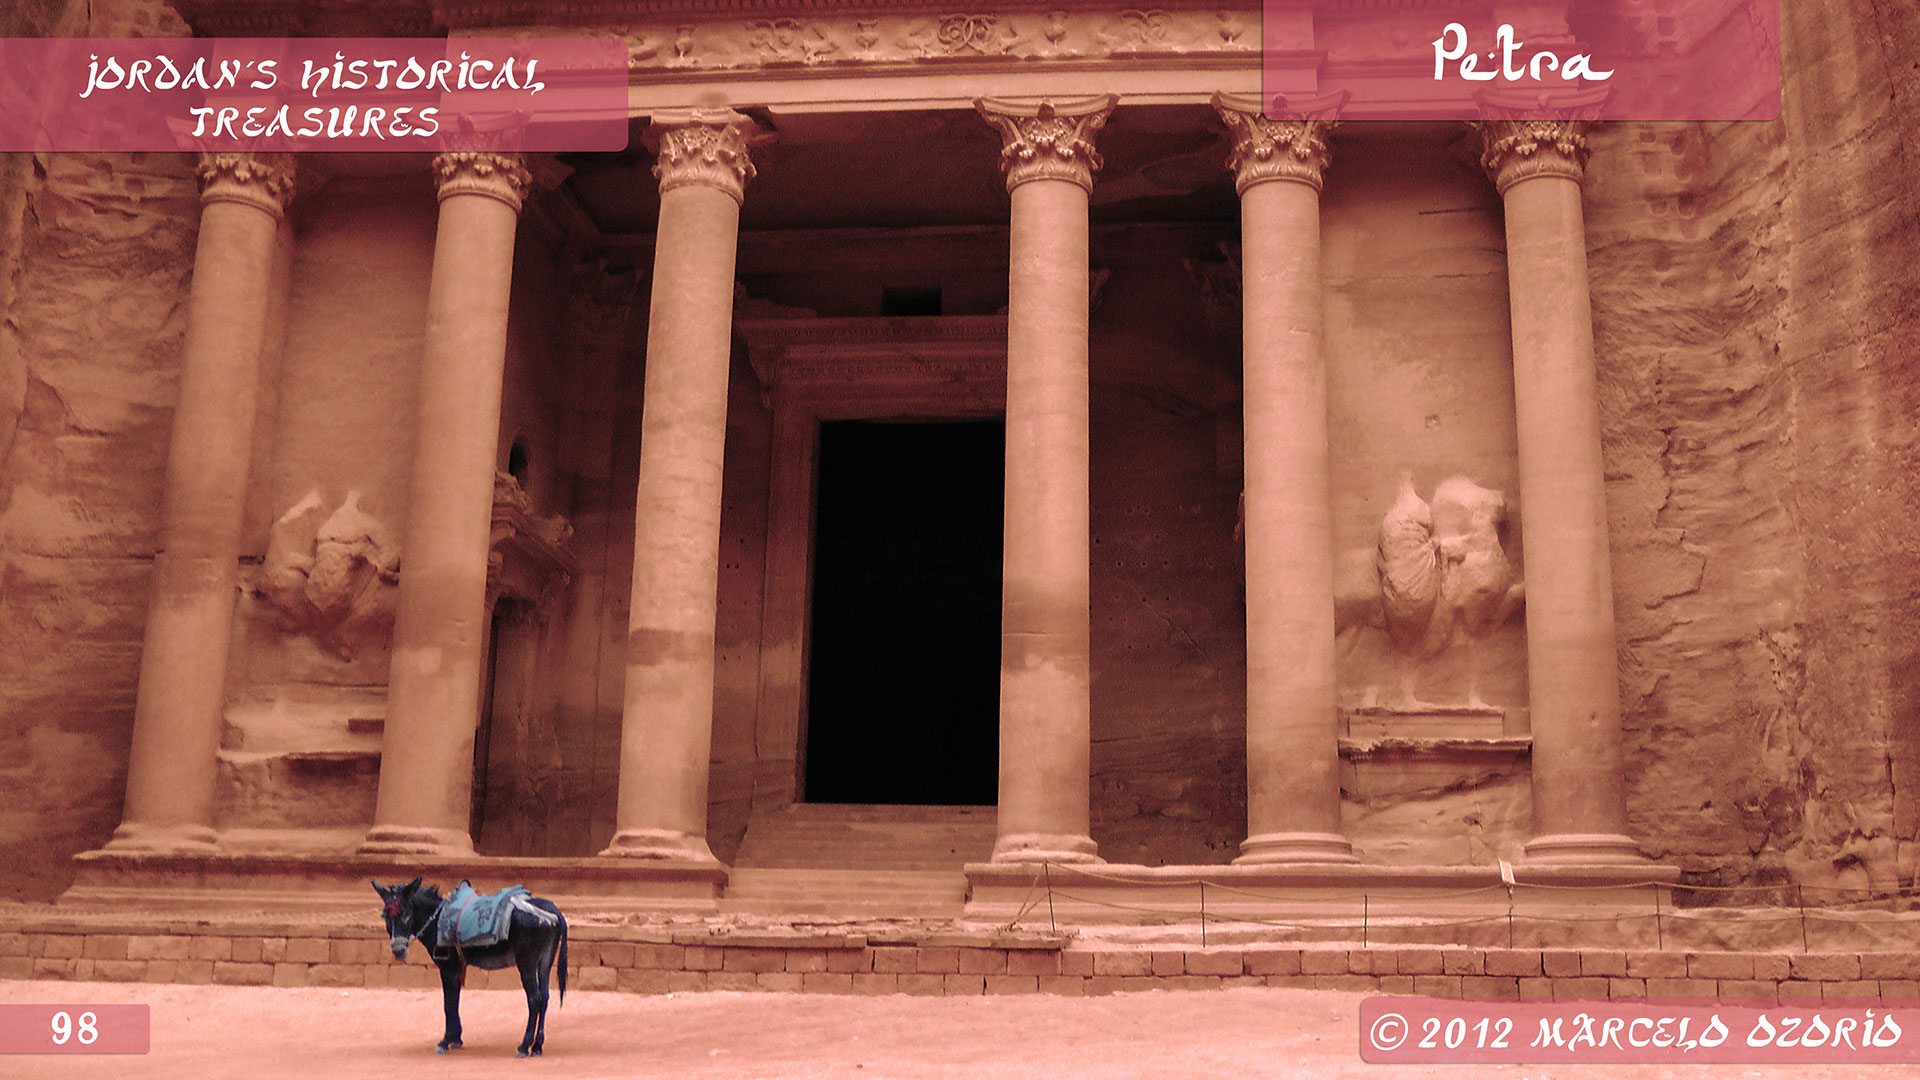 Petra Archaeological City Jordan 18 - The Astonishing Treasure at Petra - Jordan